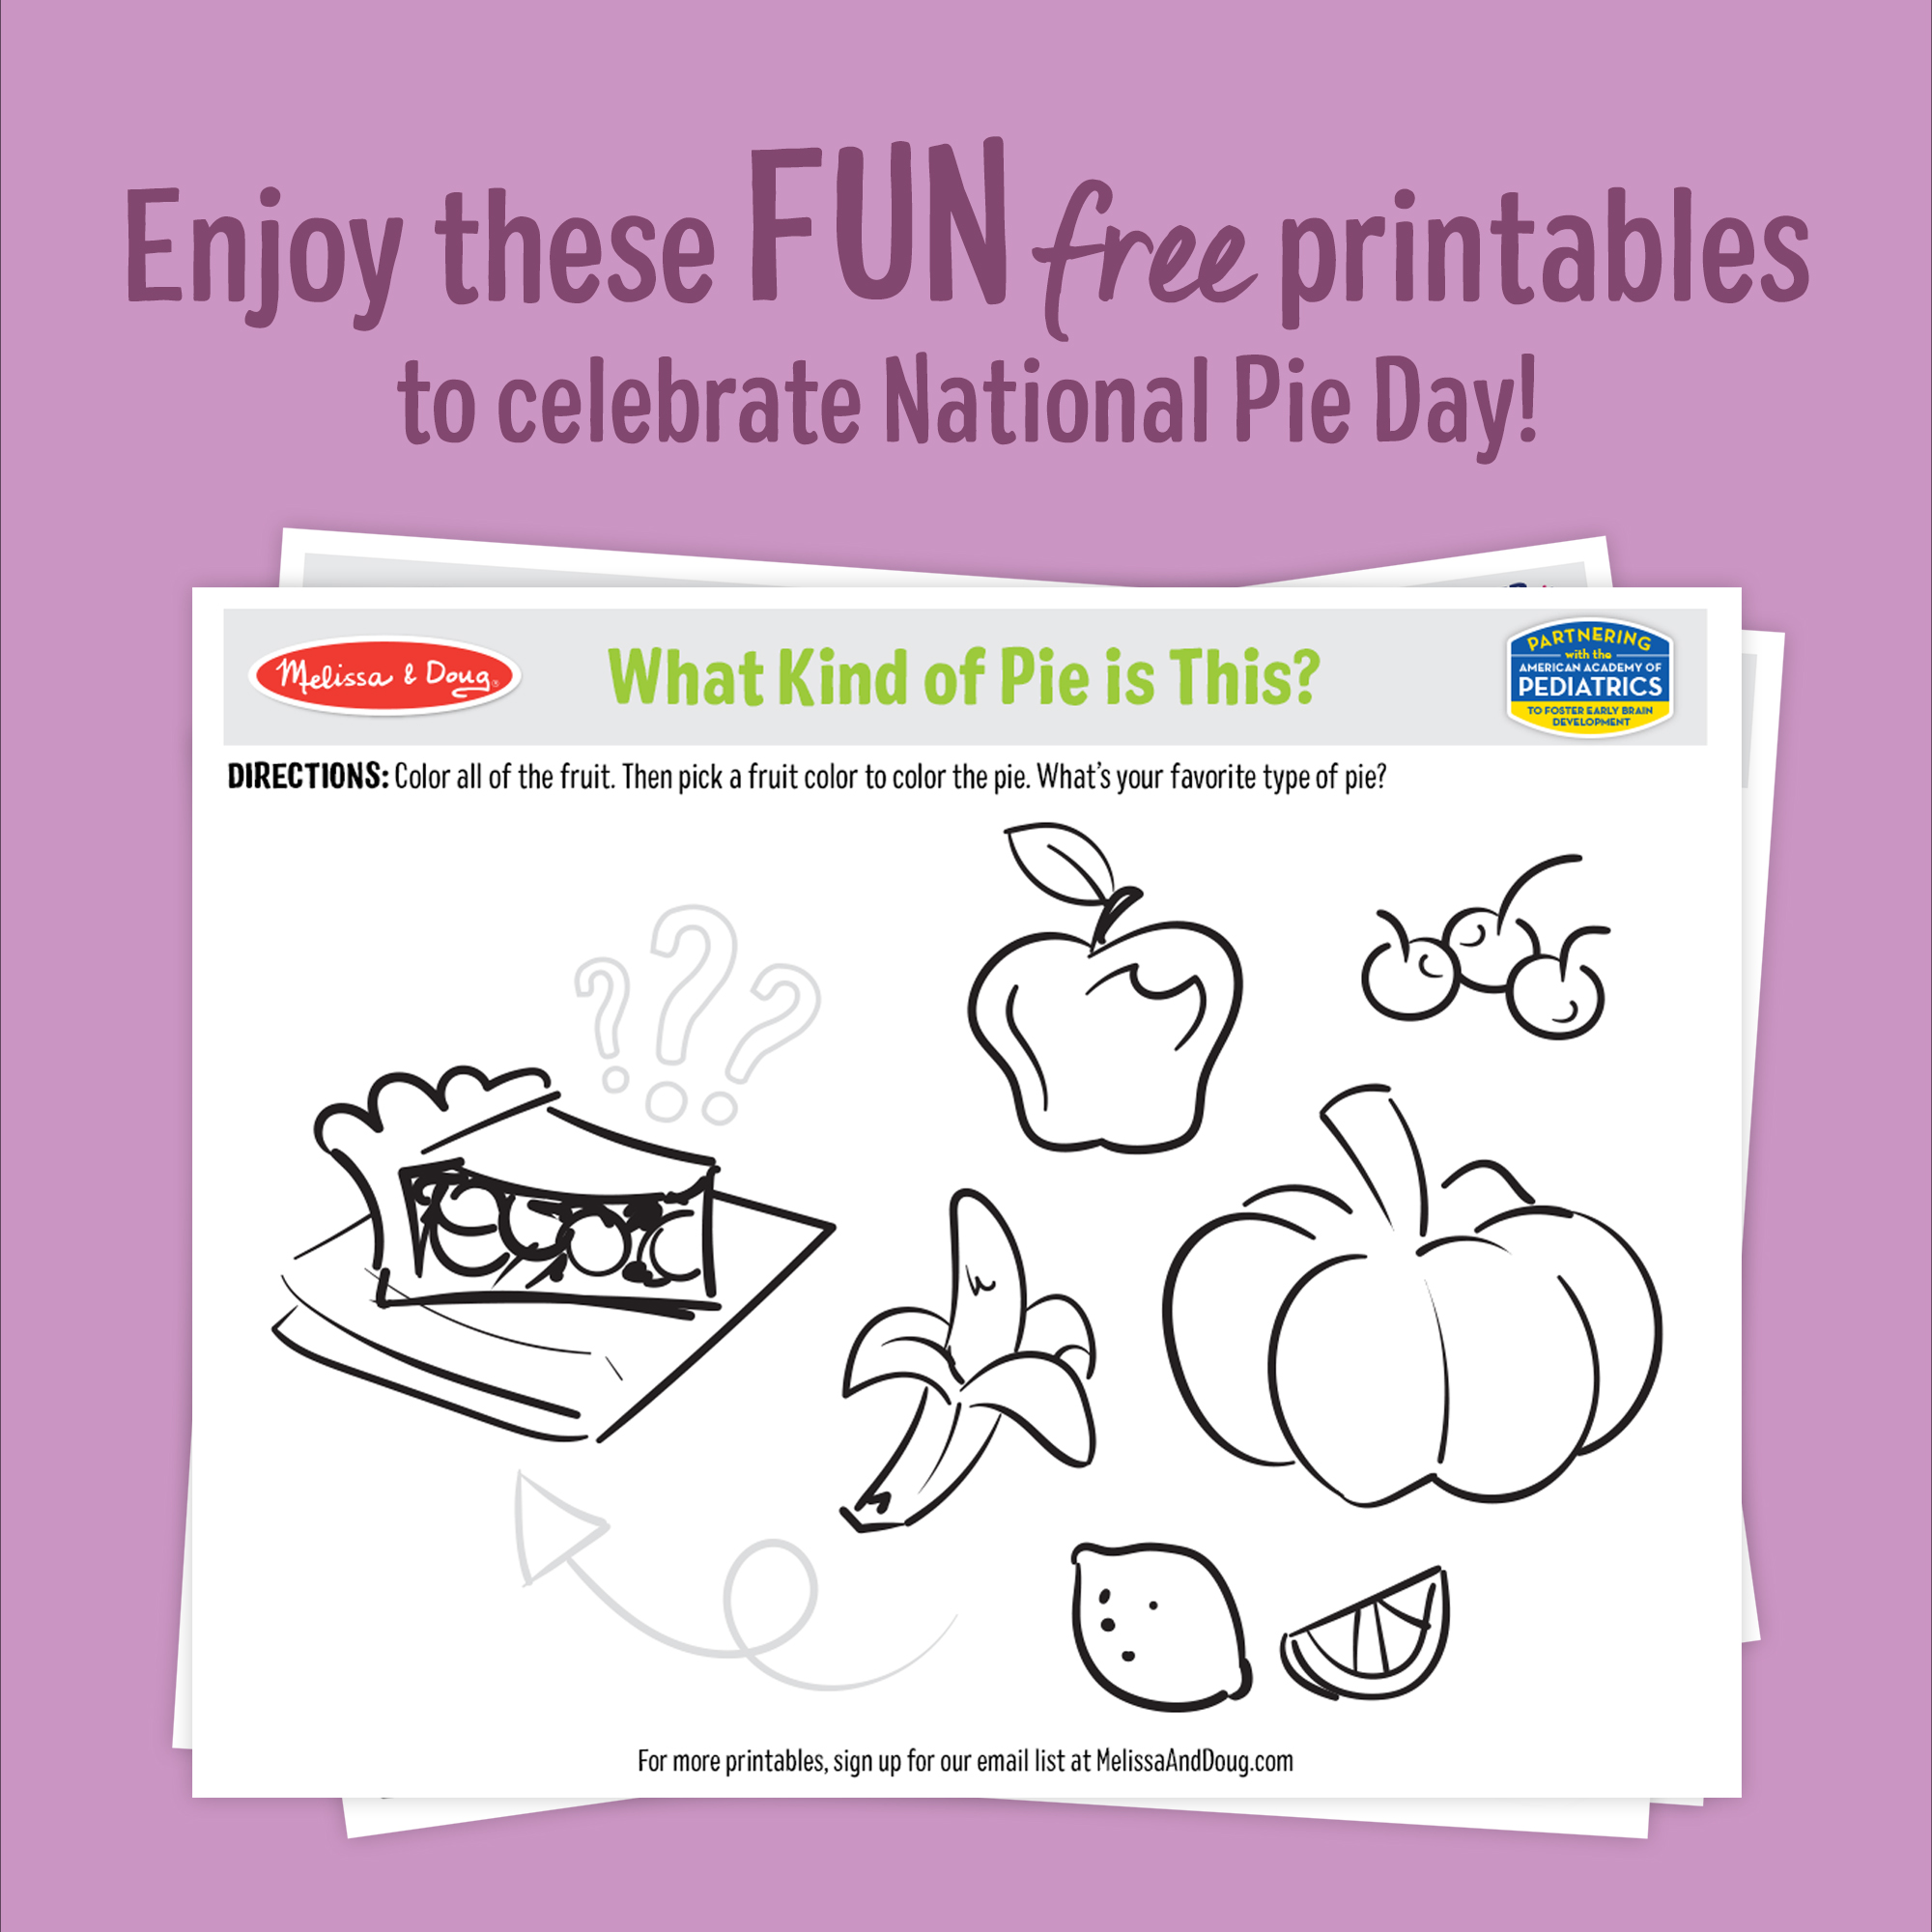 Celebrate National Pie Day with these fun and free printables for kids of all ages!